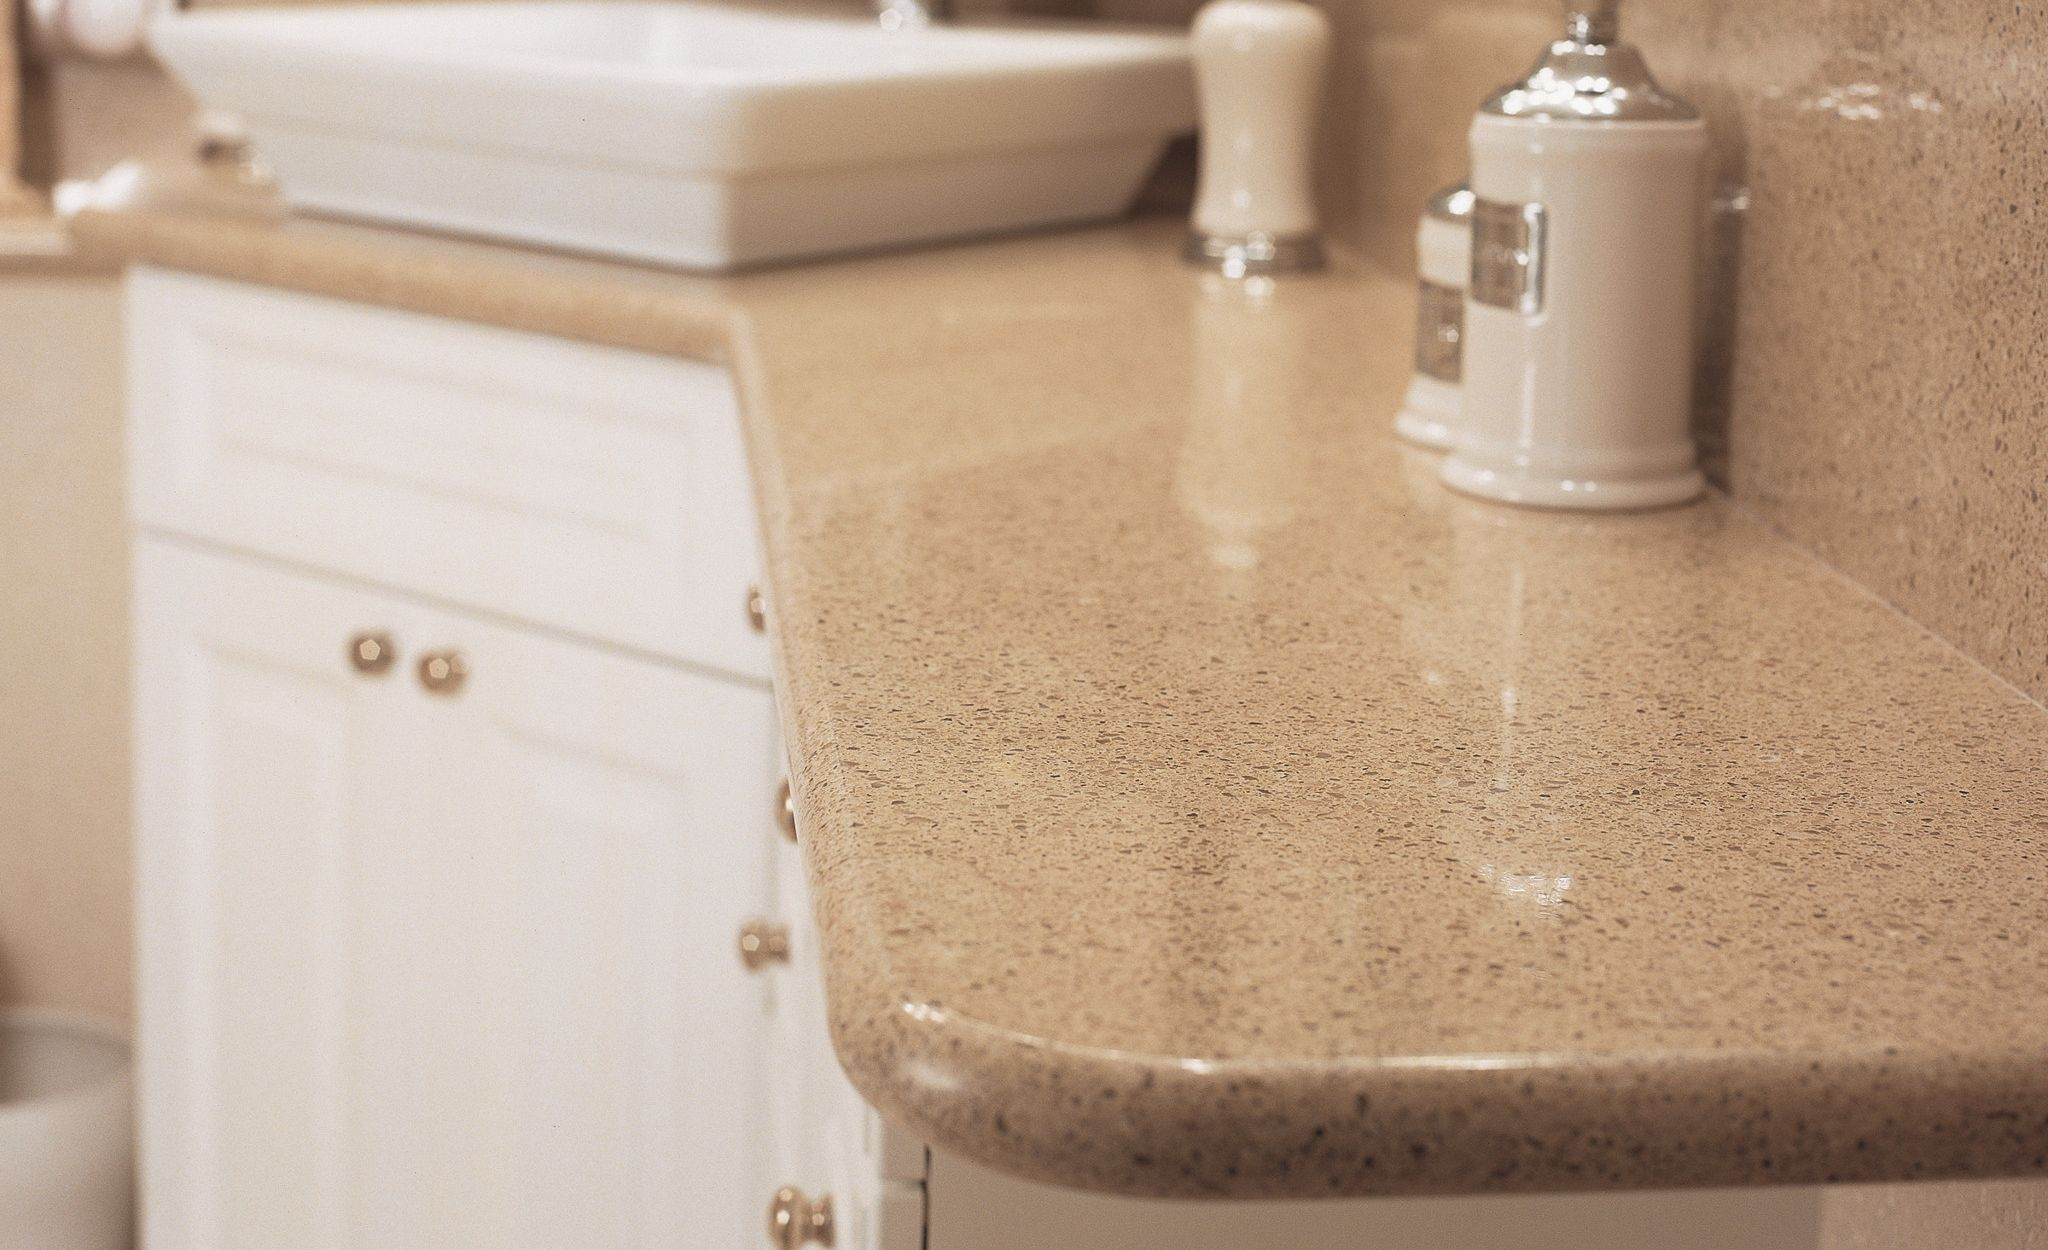 Cambria Tenby Cream with a Volcanic rounded edge.